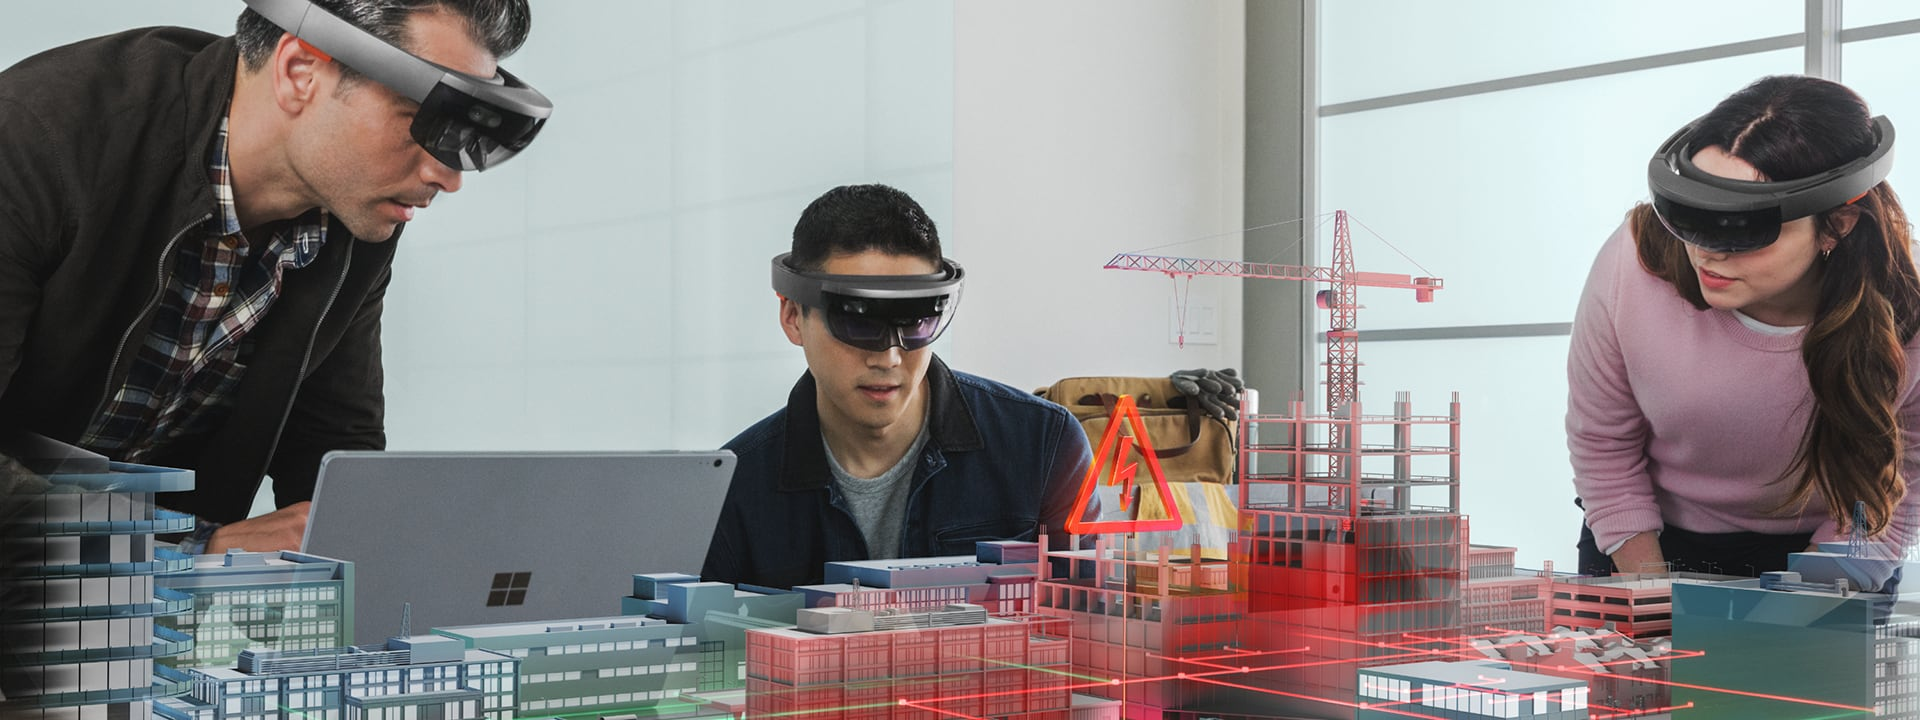 Using HoloLens to view 3D municipal models in mixed reality